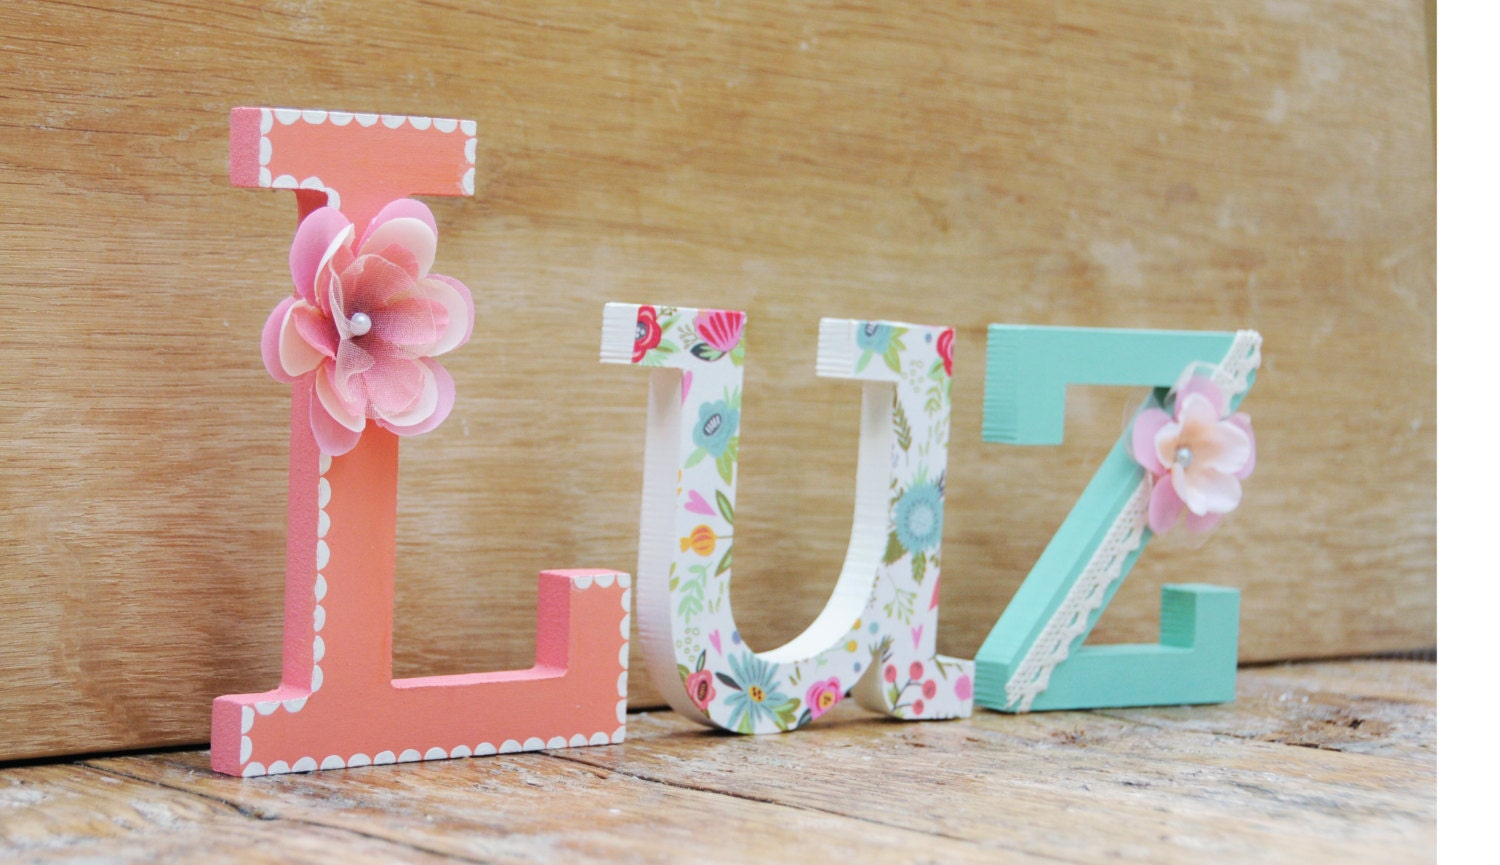 Wooden Letter Name Hand Painted Amp Decorated Wooden Letters